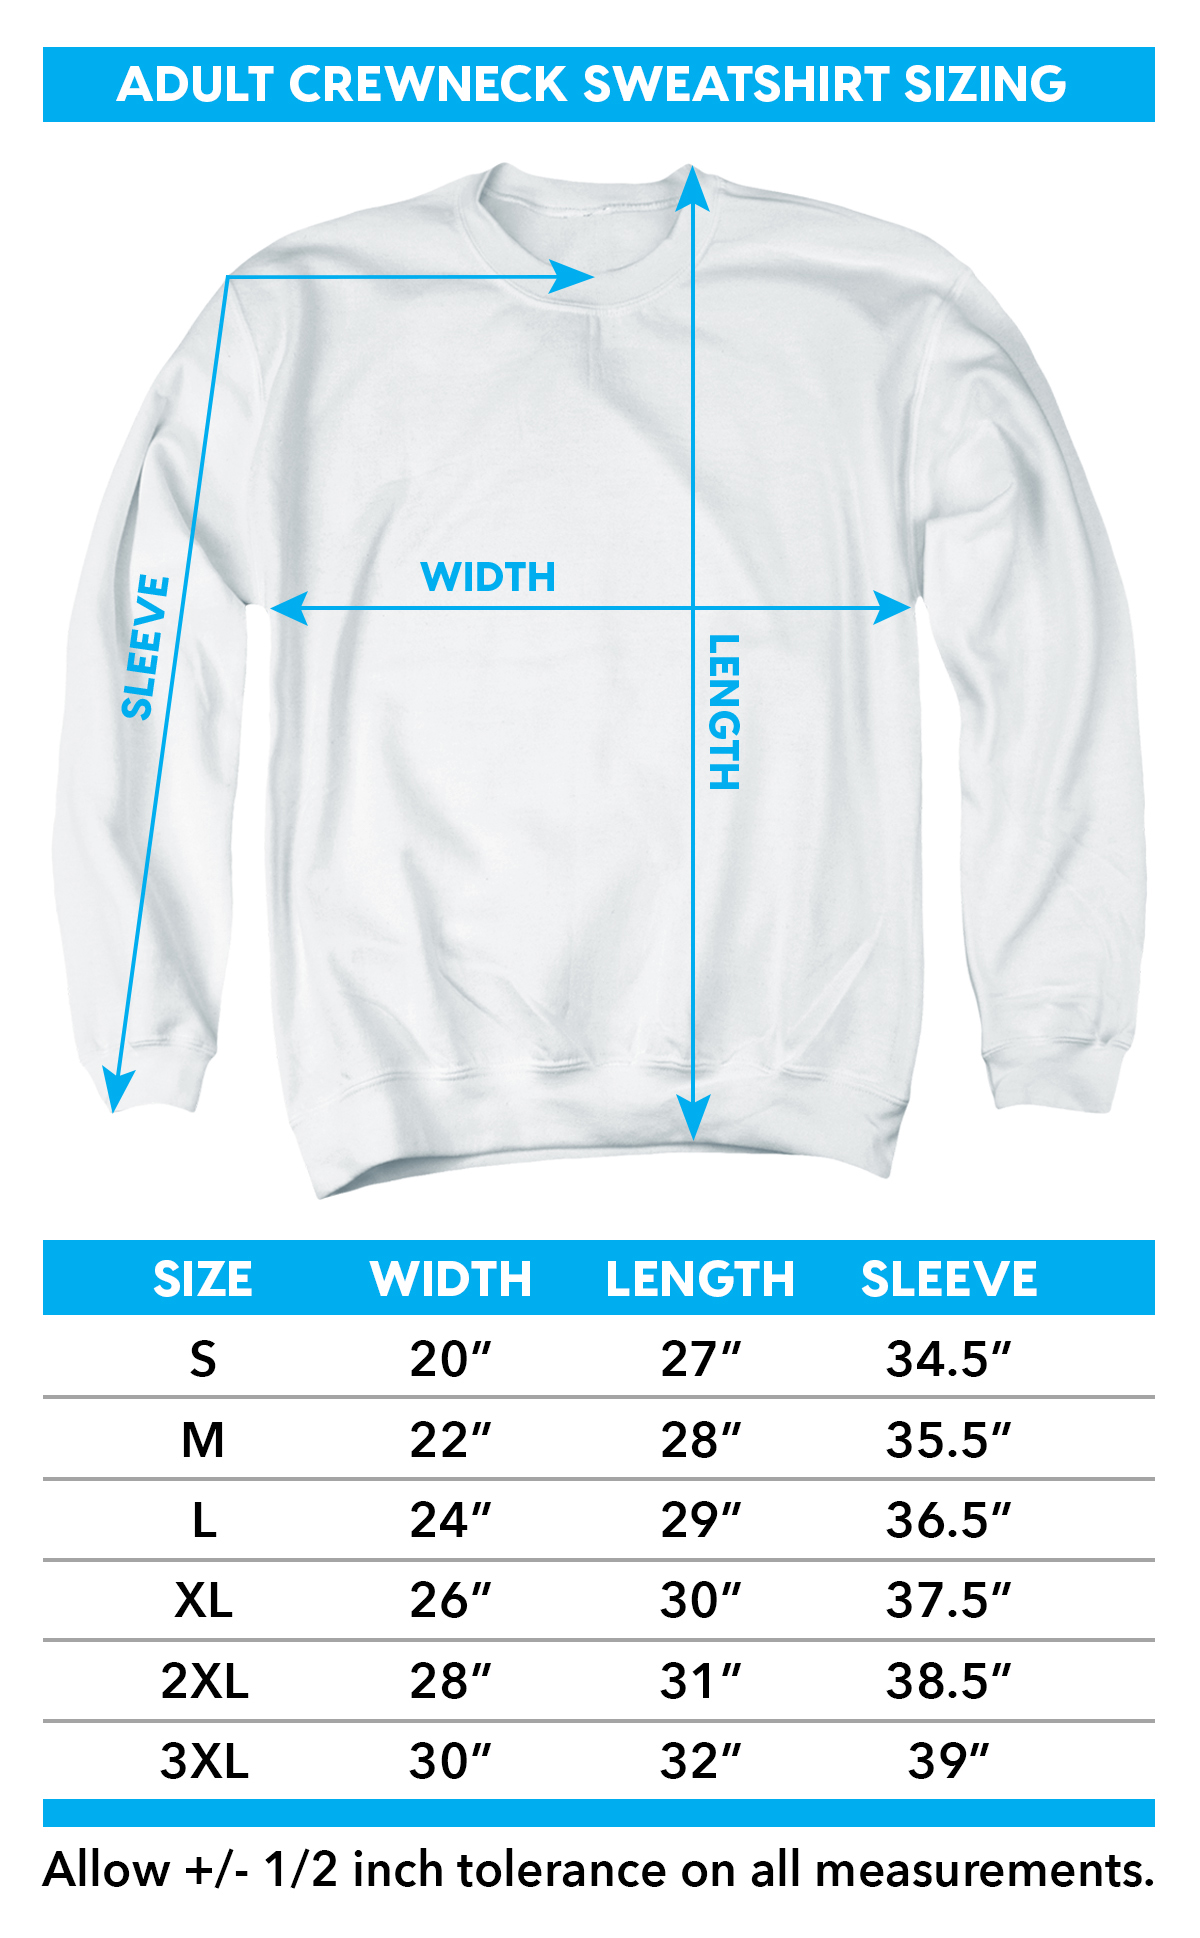 Sizing chart for the Kung Fu Panda Kung Furry crewneck sweatshirt